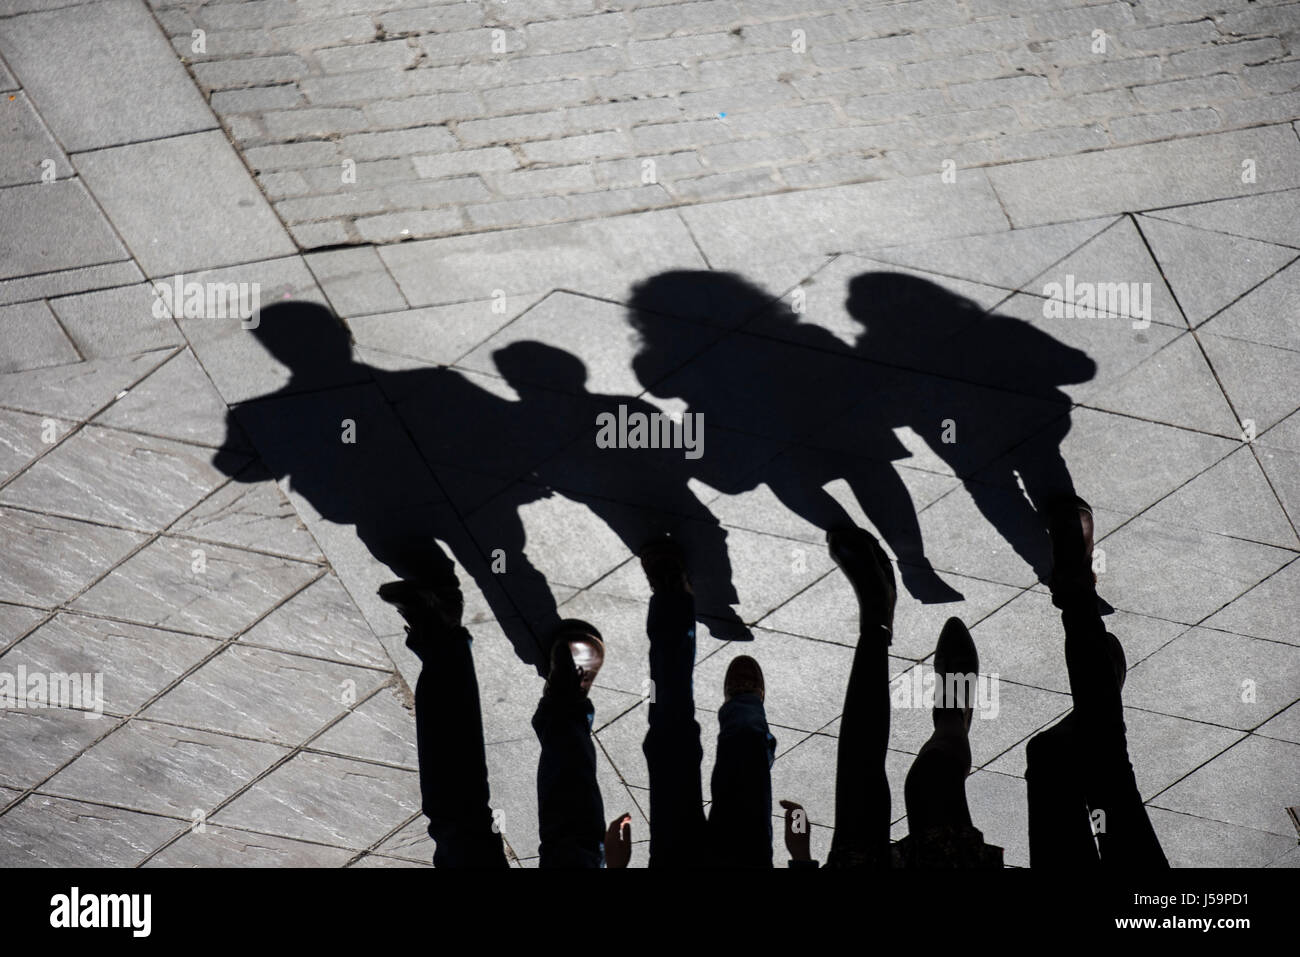 The shadows and silhouettes of a family group (father, mother, son and daughter) walking down the street - Stock Image